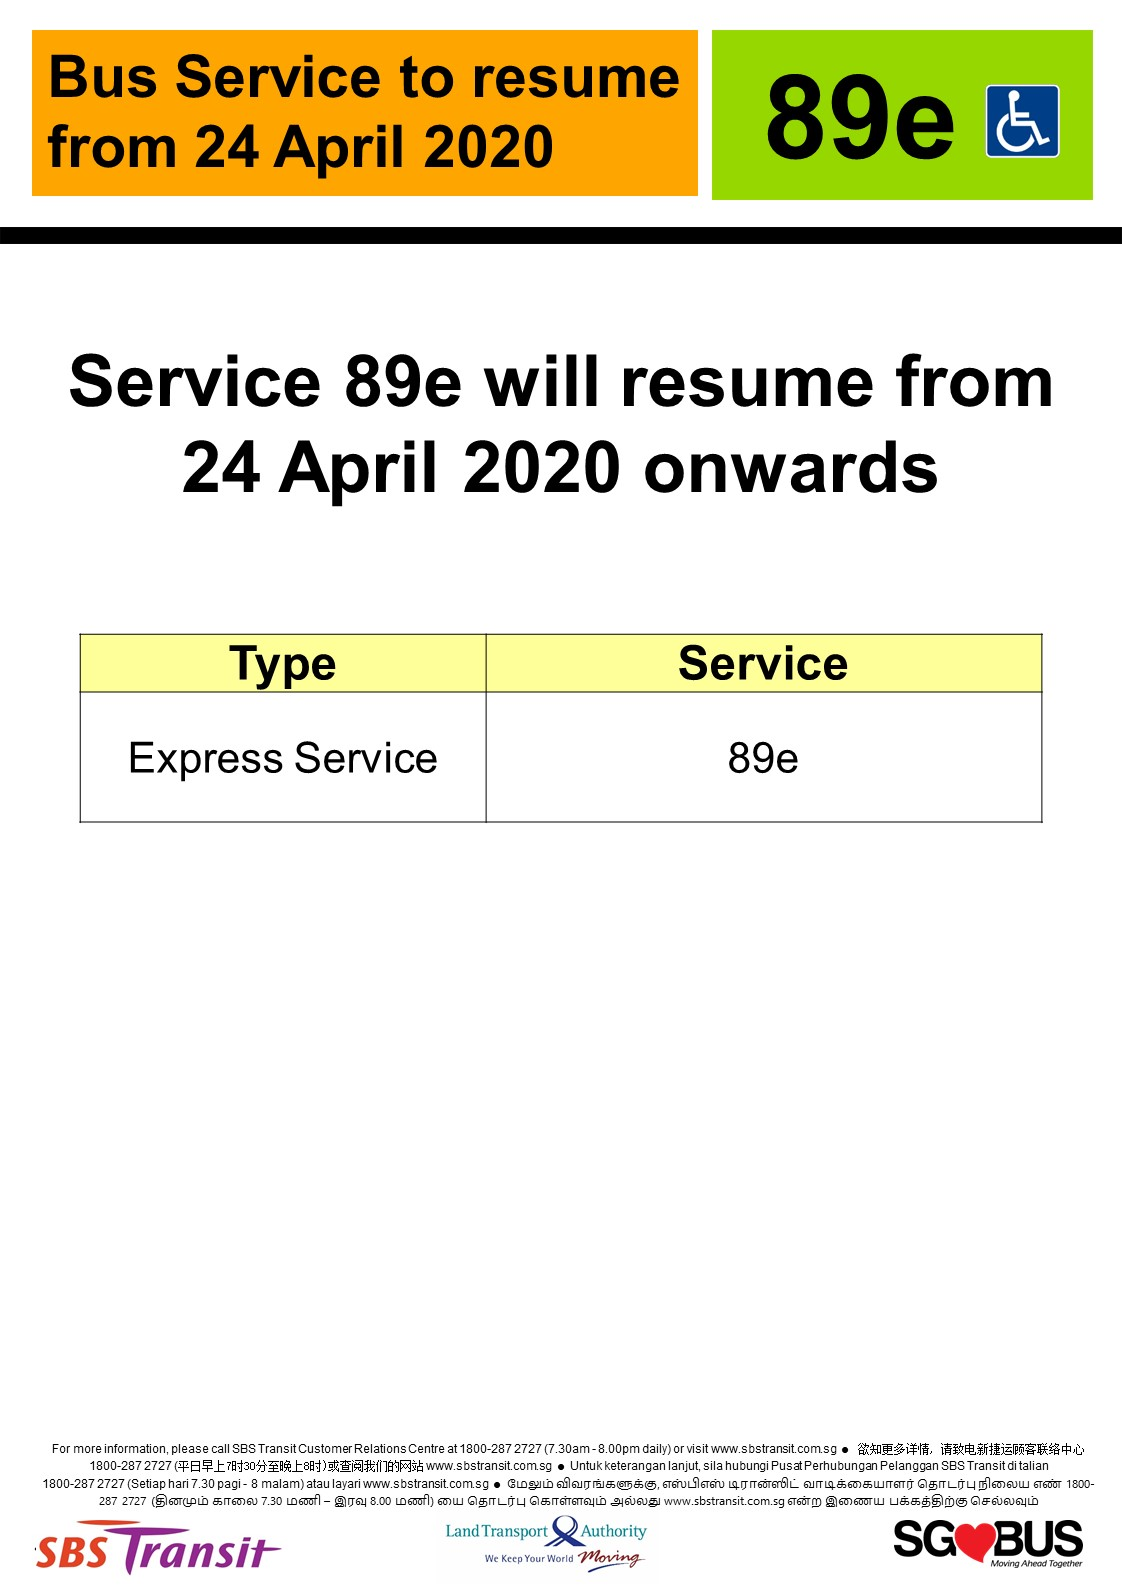 Official announcement from SBS Transit on resumption of express bus service 89e from 24 April 2020.